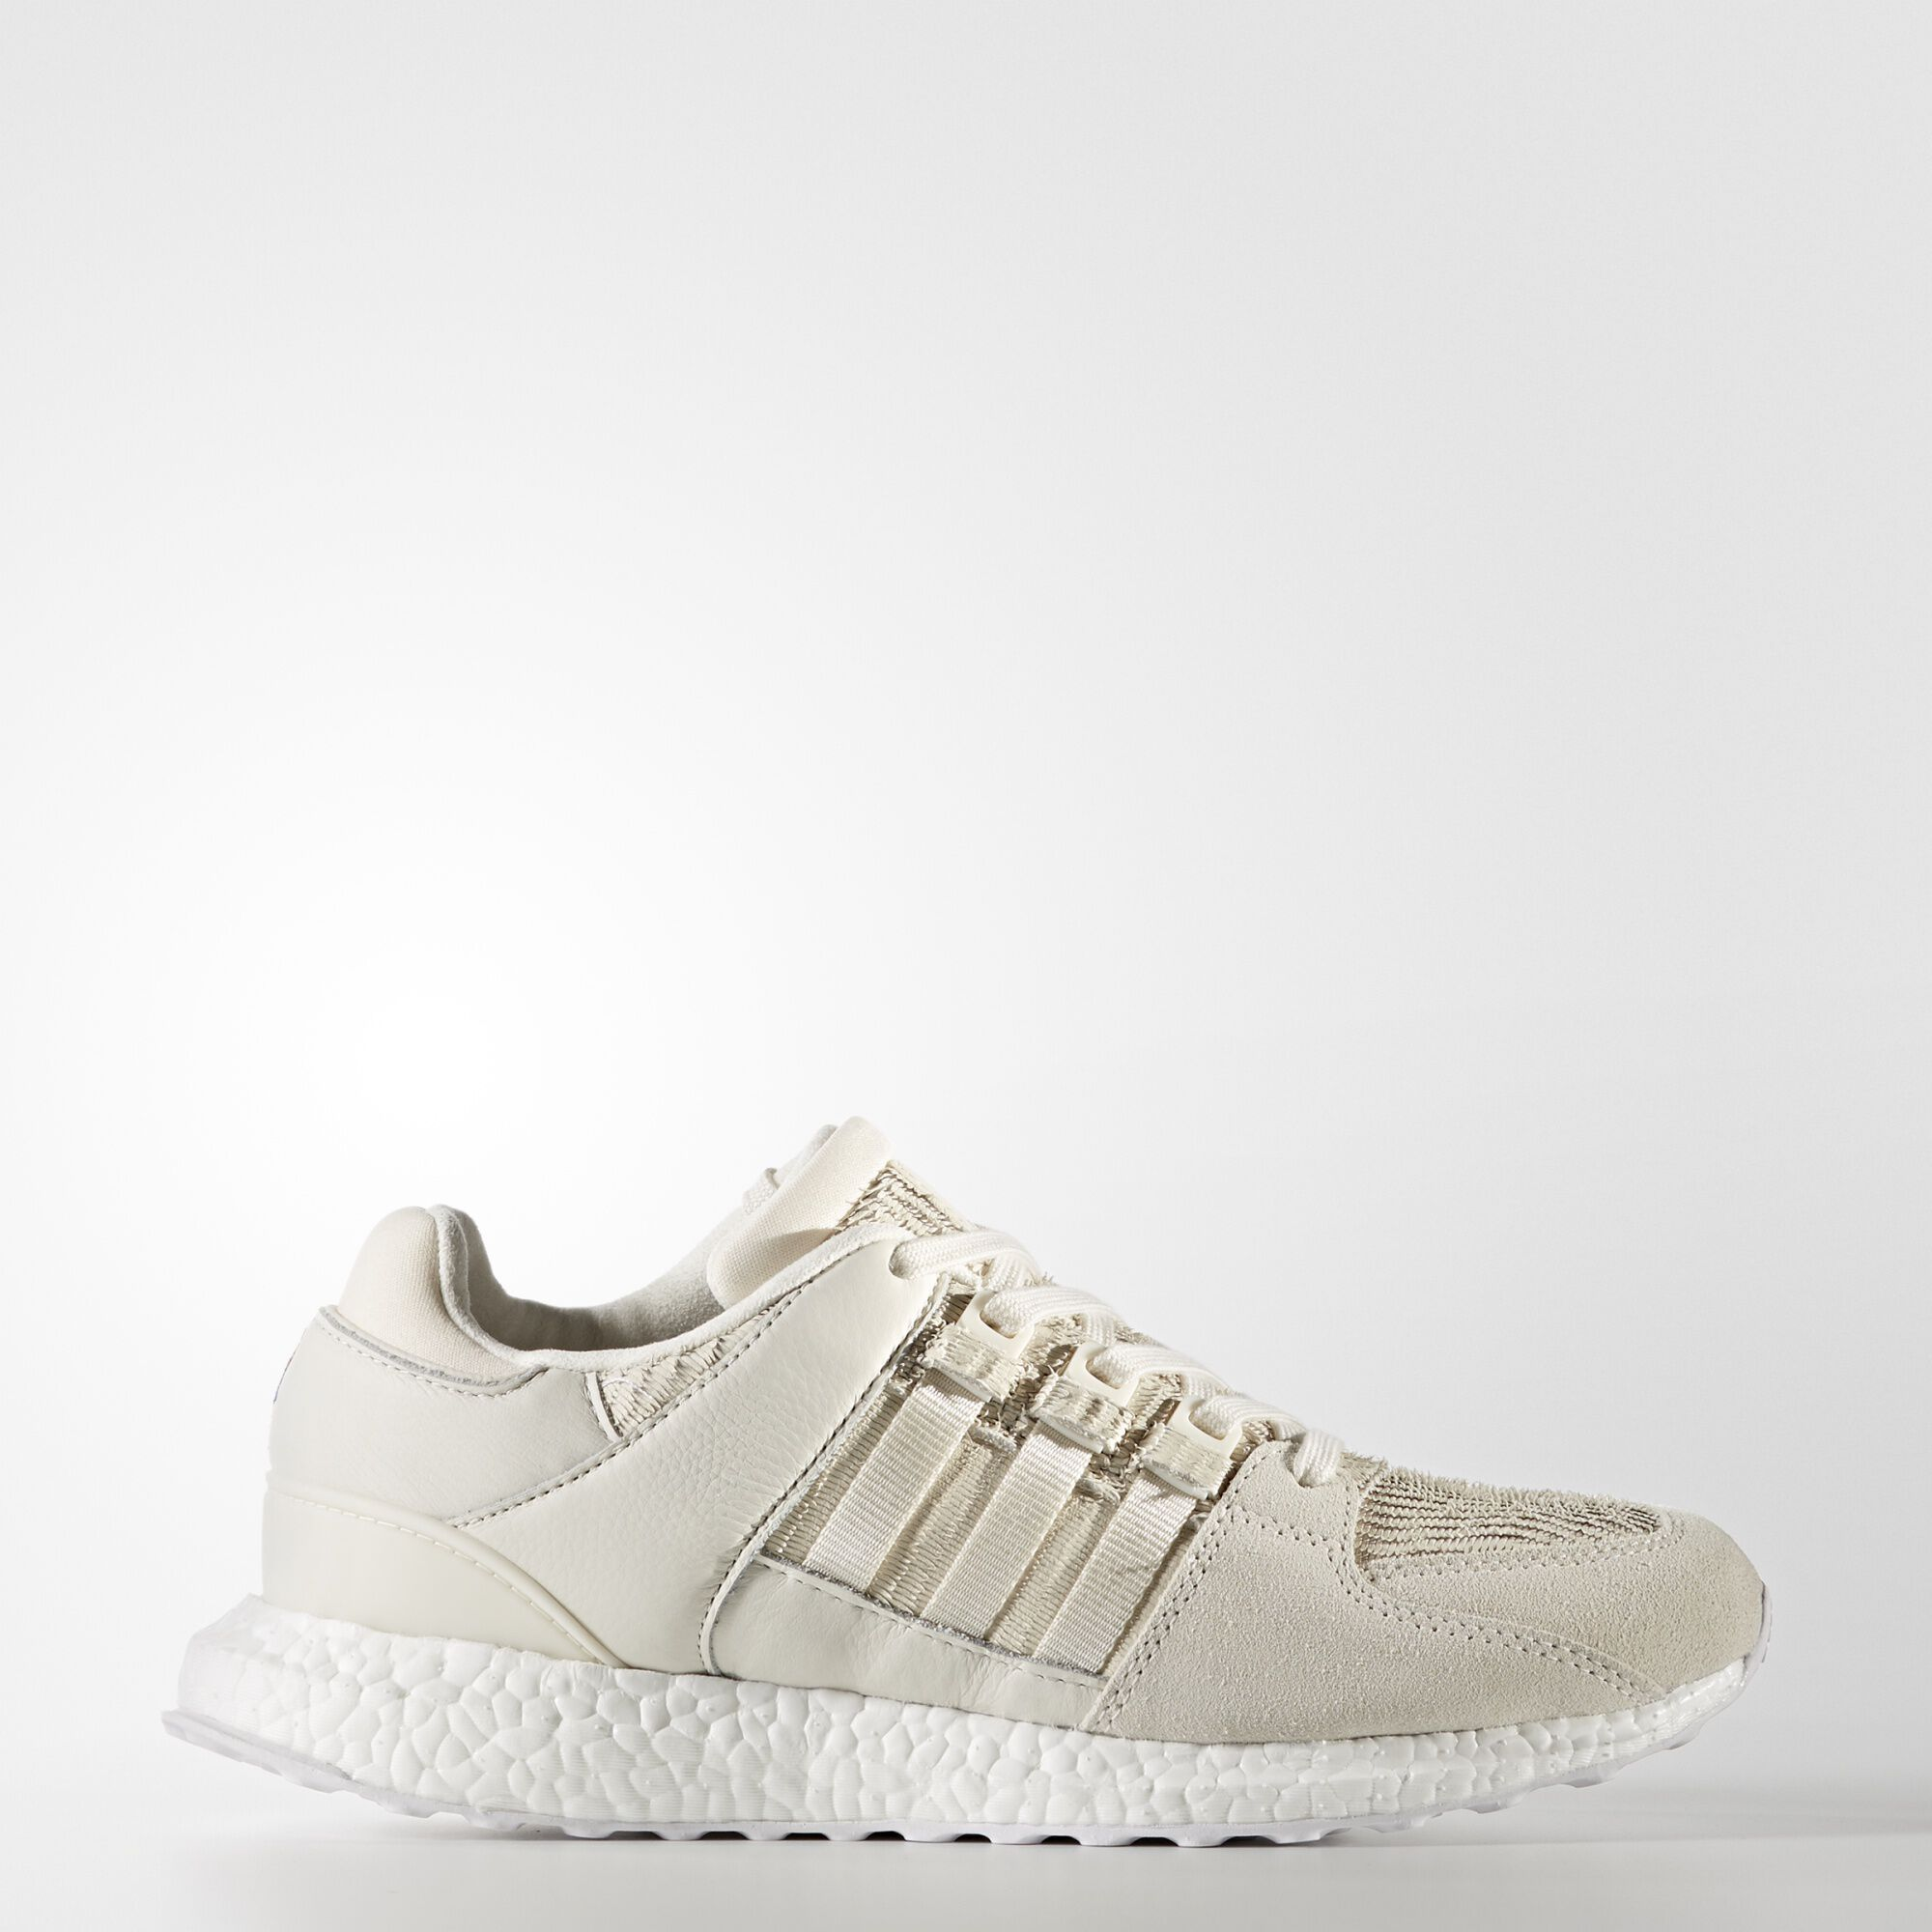 adidas eqt support rf pk off white core black primeknit ba7507